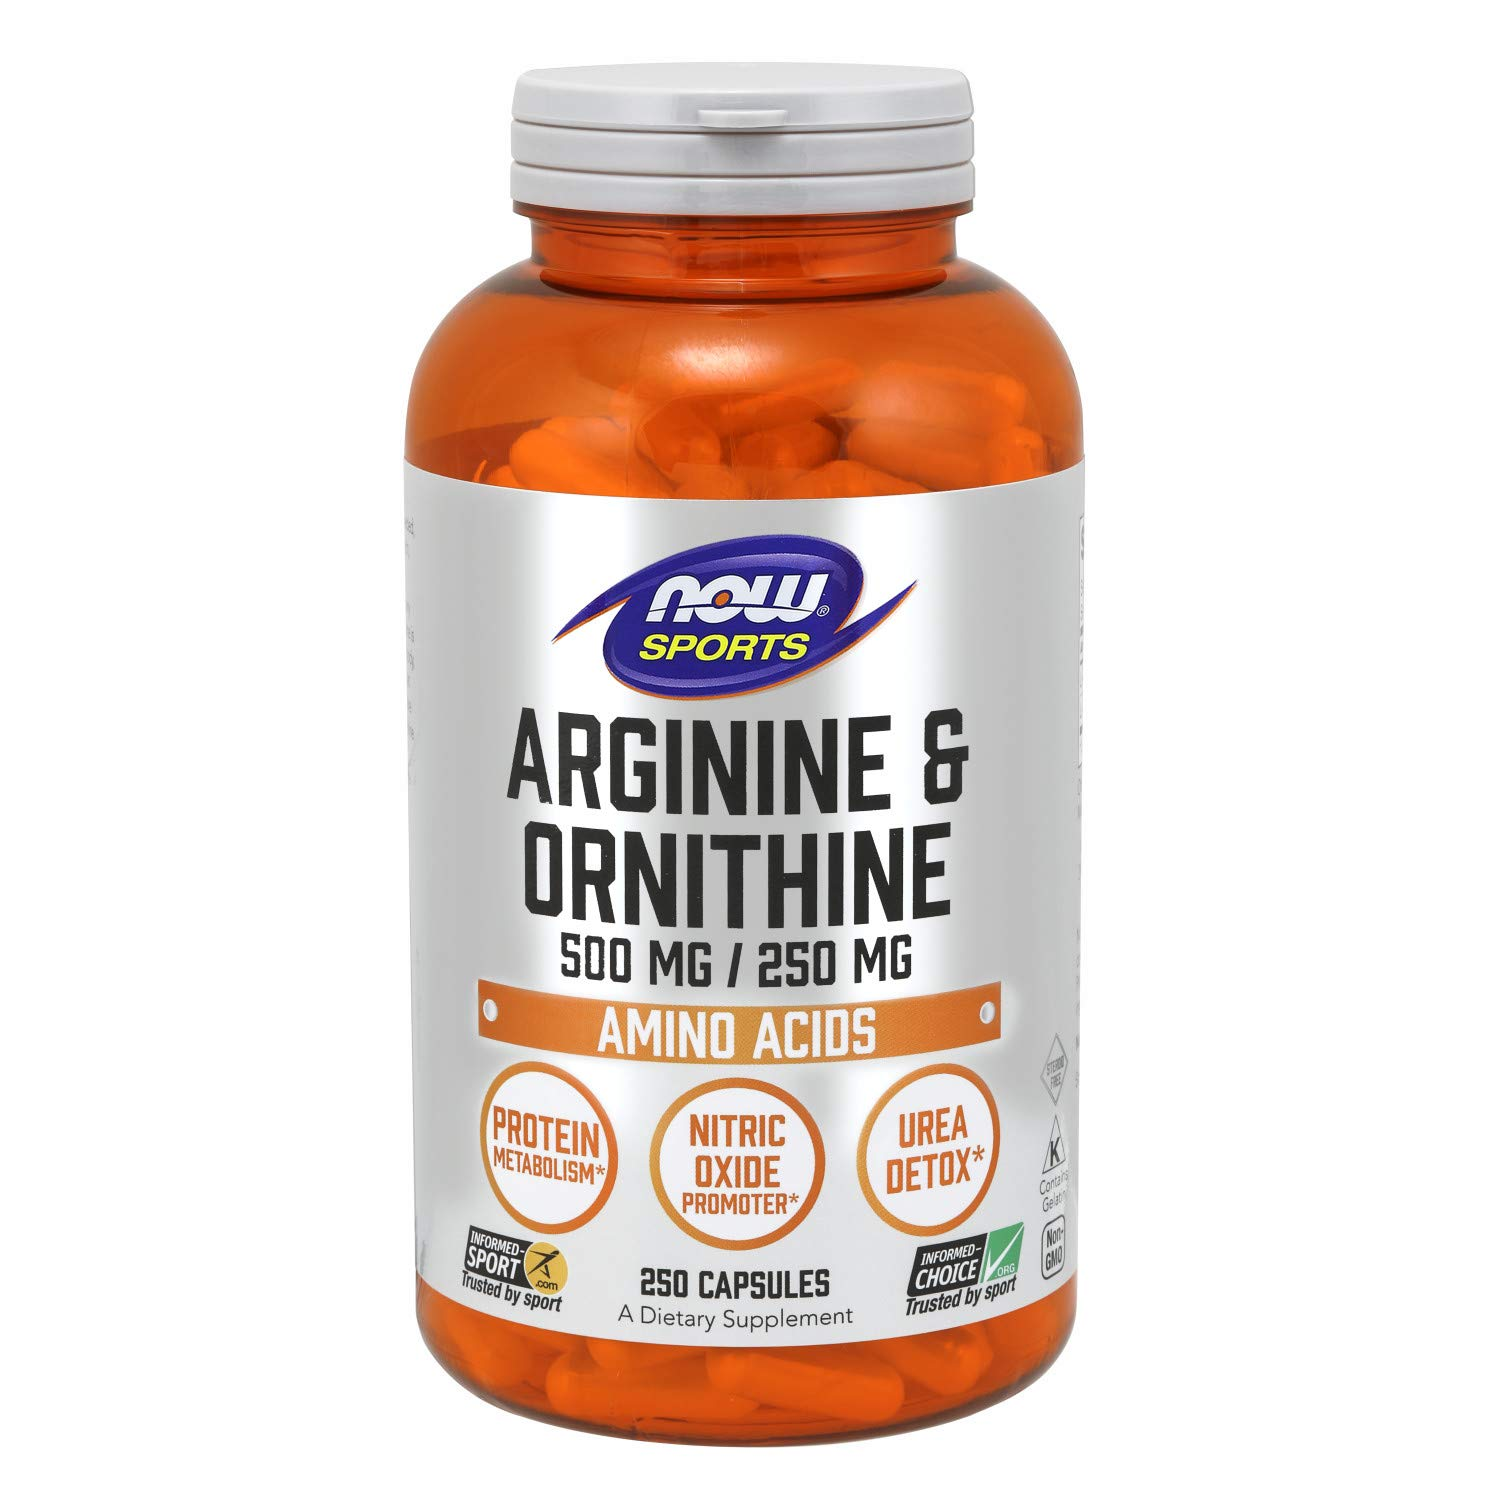 NOW Sports Nutrition, Arginine & Ornithine 500/250mg, 250 Capsules by NOW